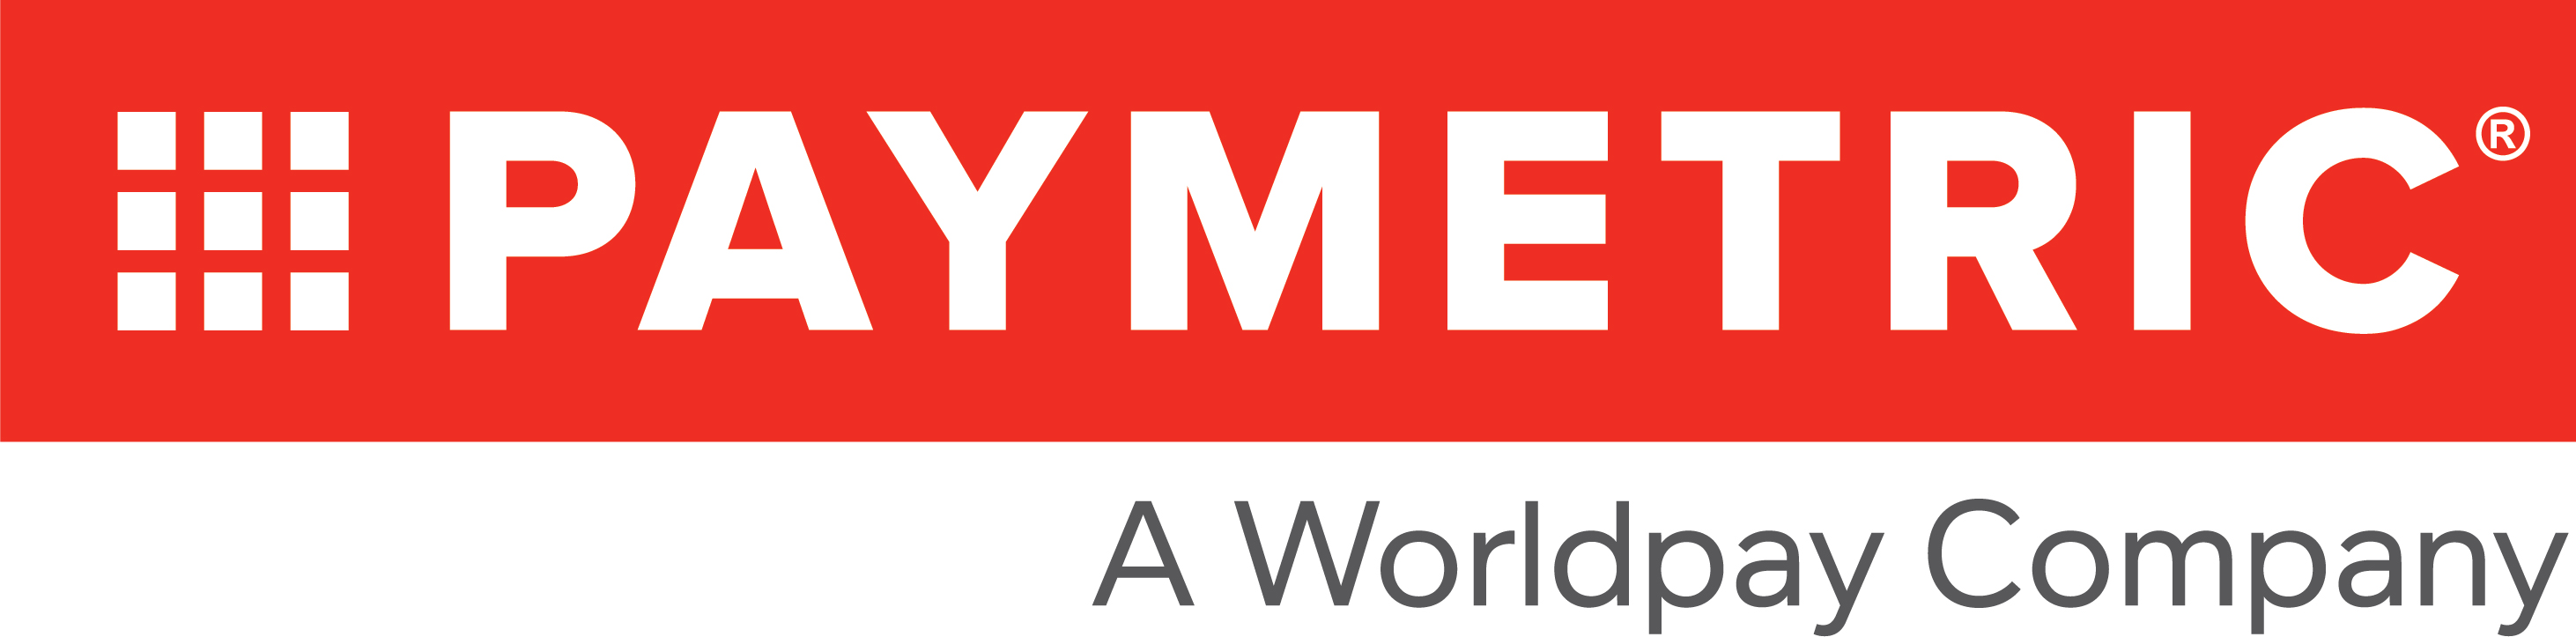 Paymetric, a Worldpay Company Logo